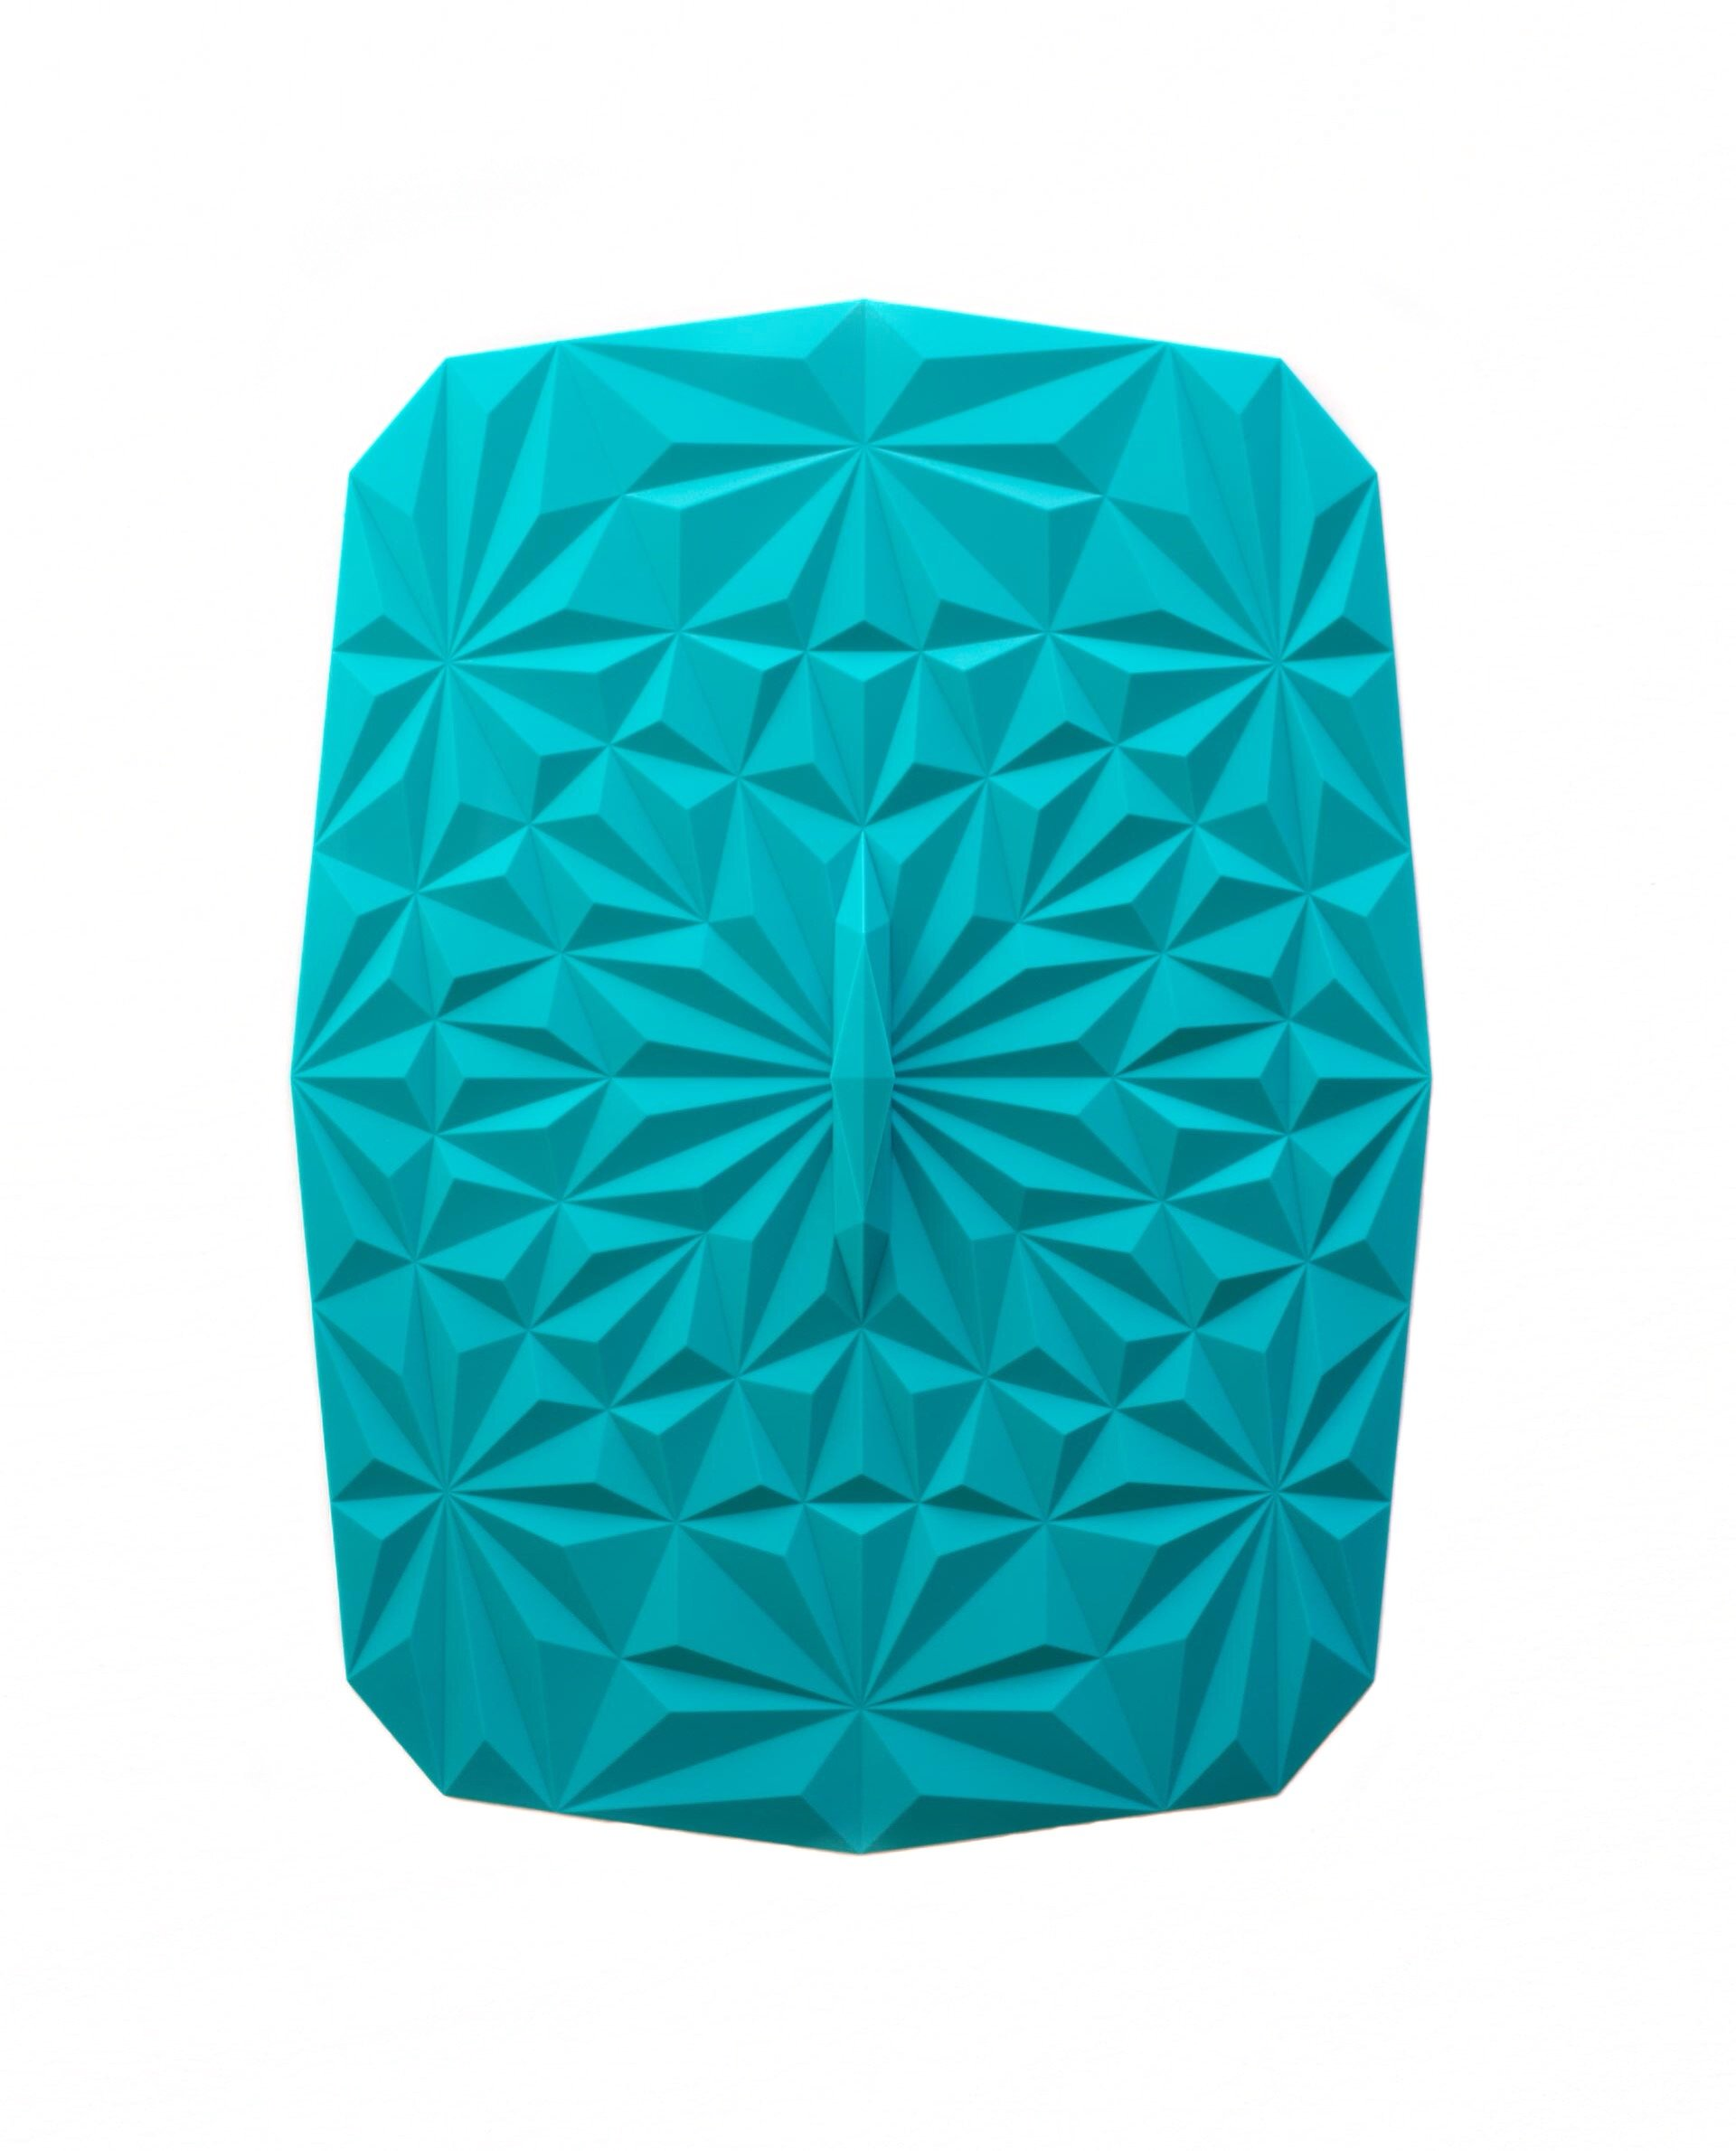 GIR: Get It Right Premium Silicone Rectangular Lid, 9 by 13 Inches, Teal